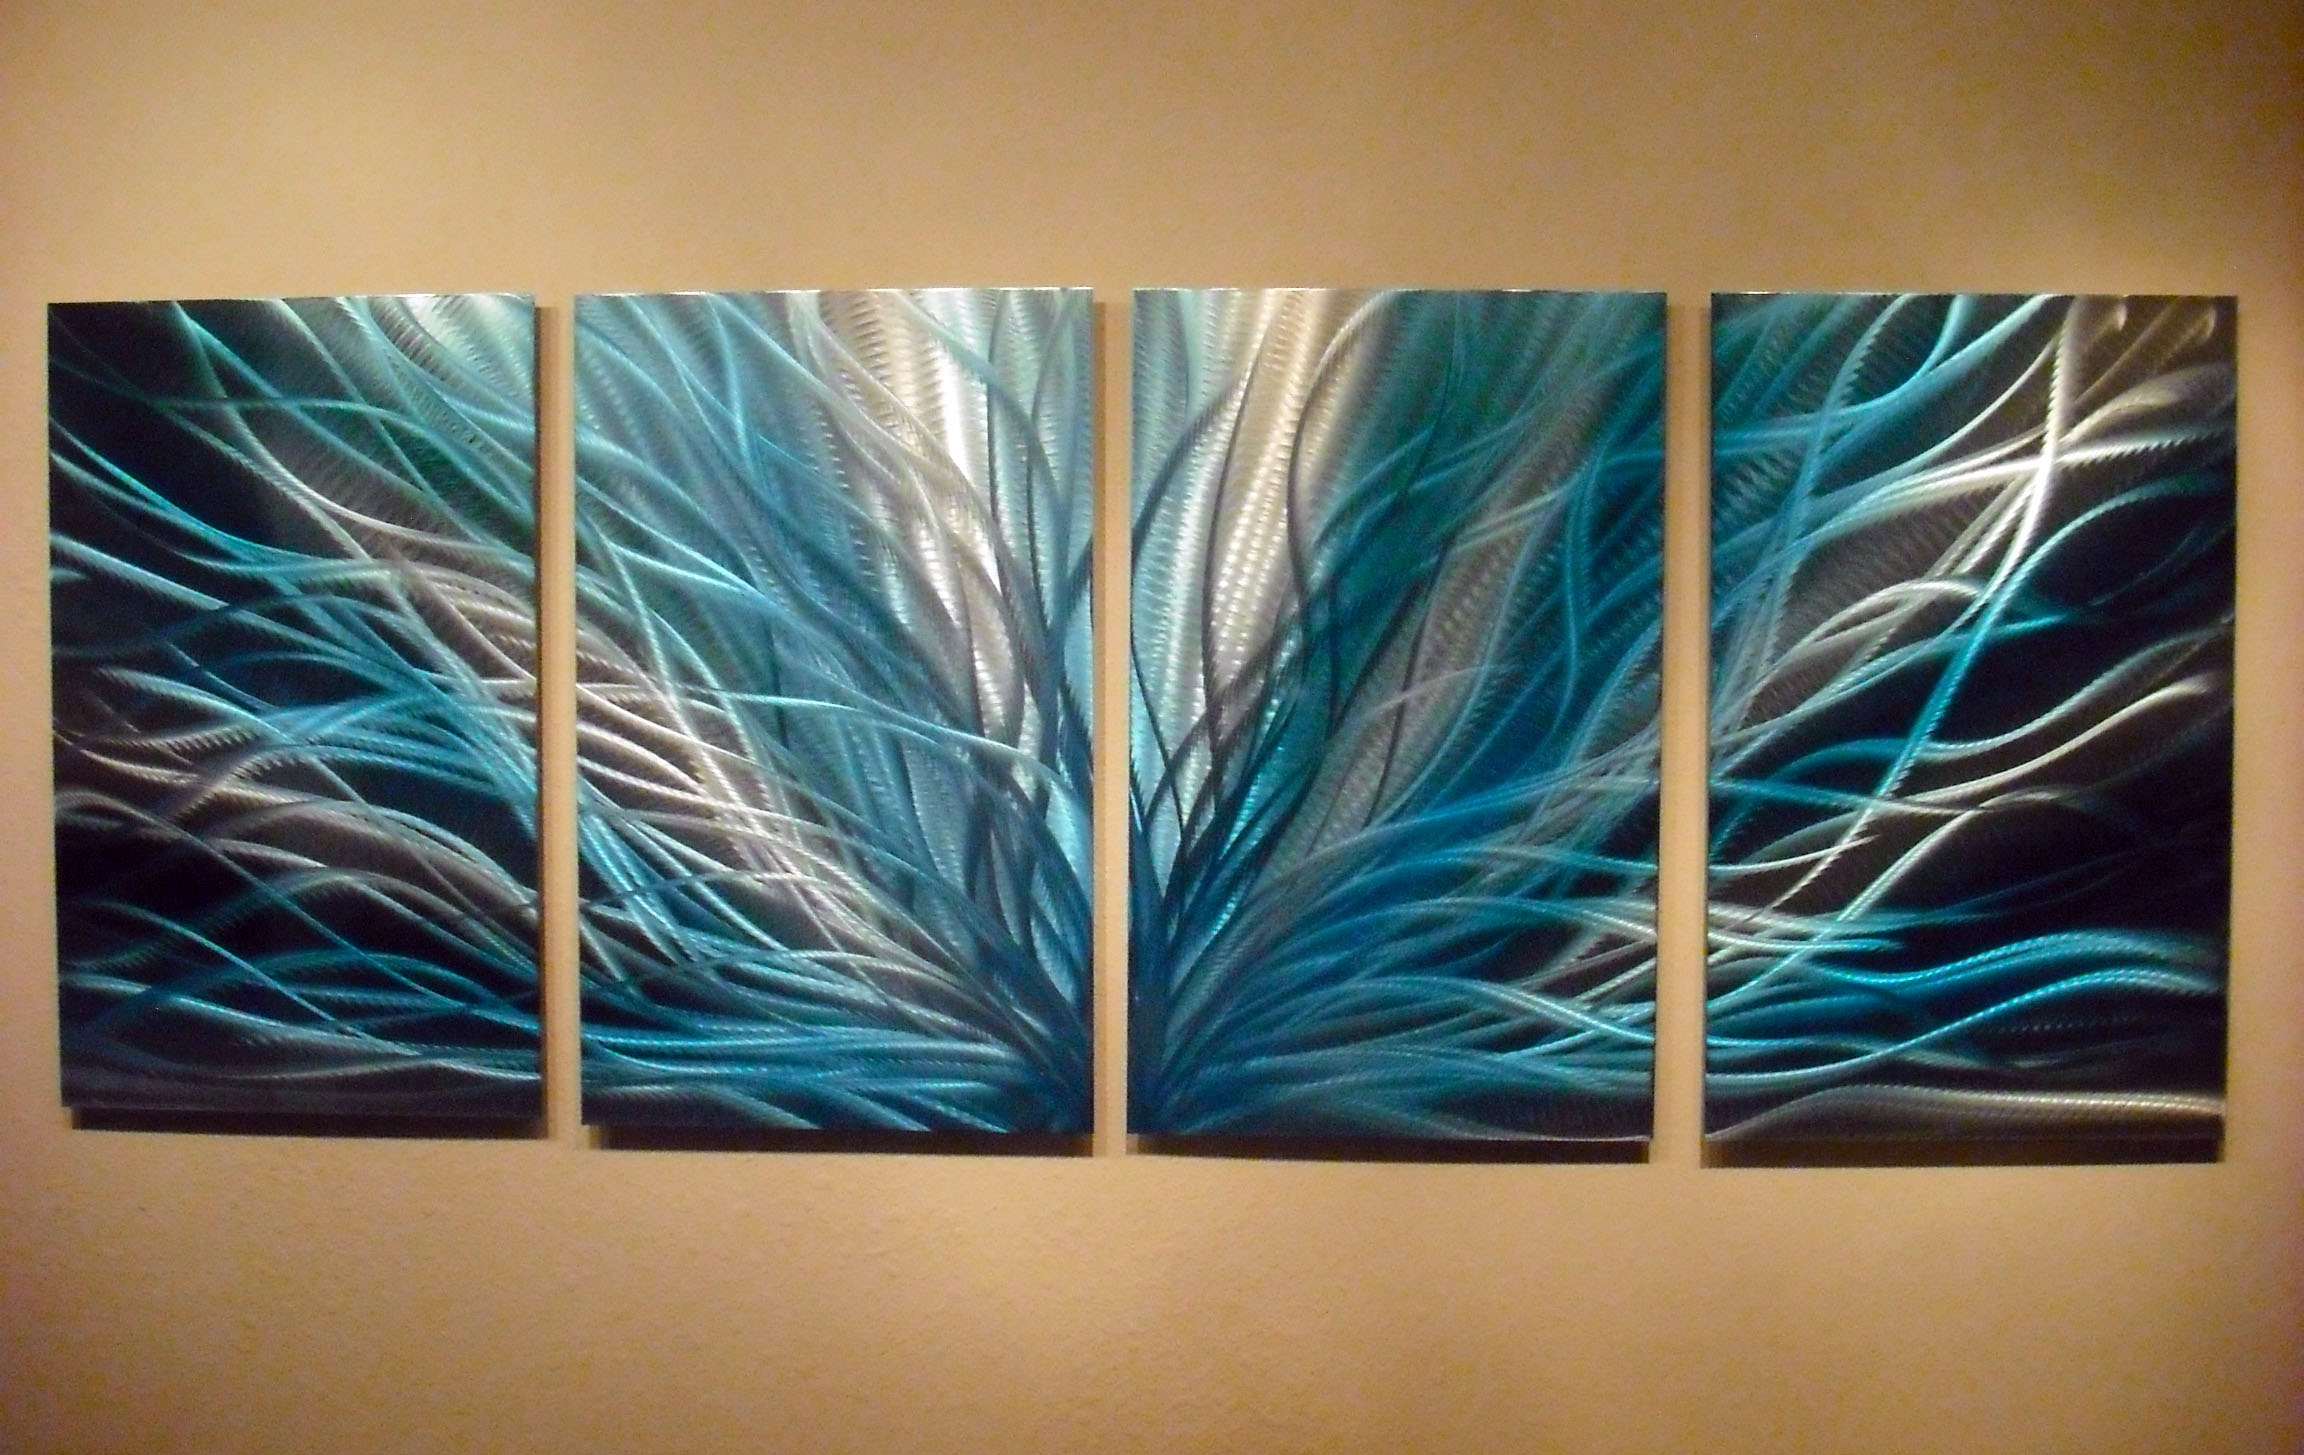 Newest Large Abstract Metal Wall Art Regarding Blue Vortex Epic Extra Large Abstract Metal Wall Artjon (View 12 of 15)